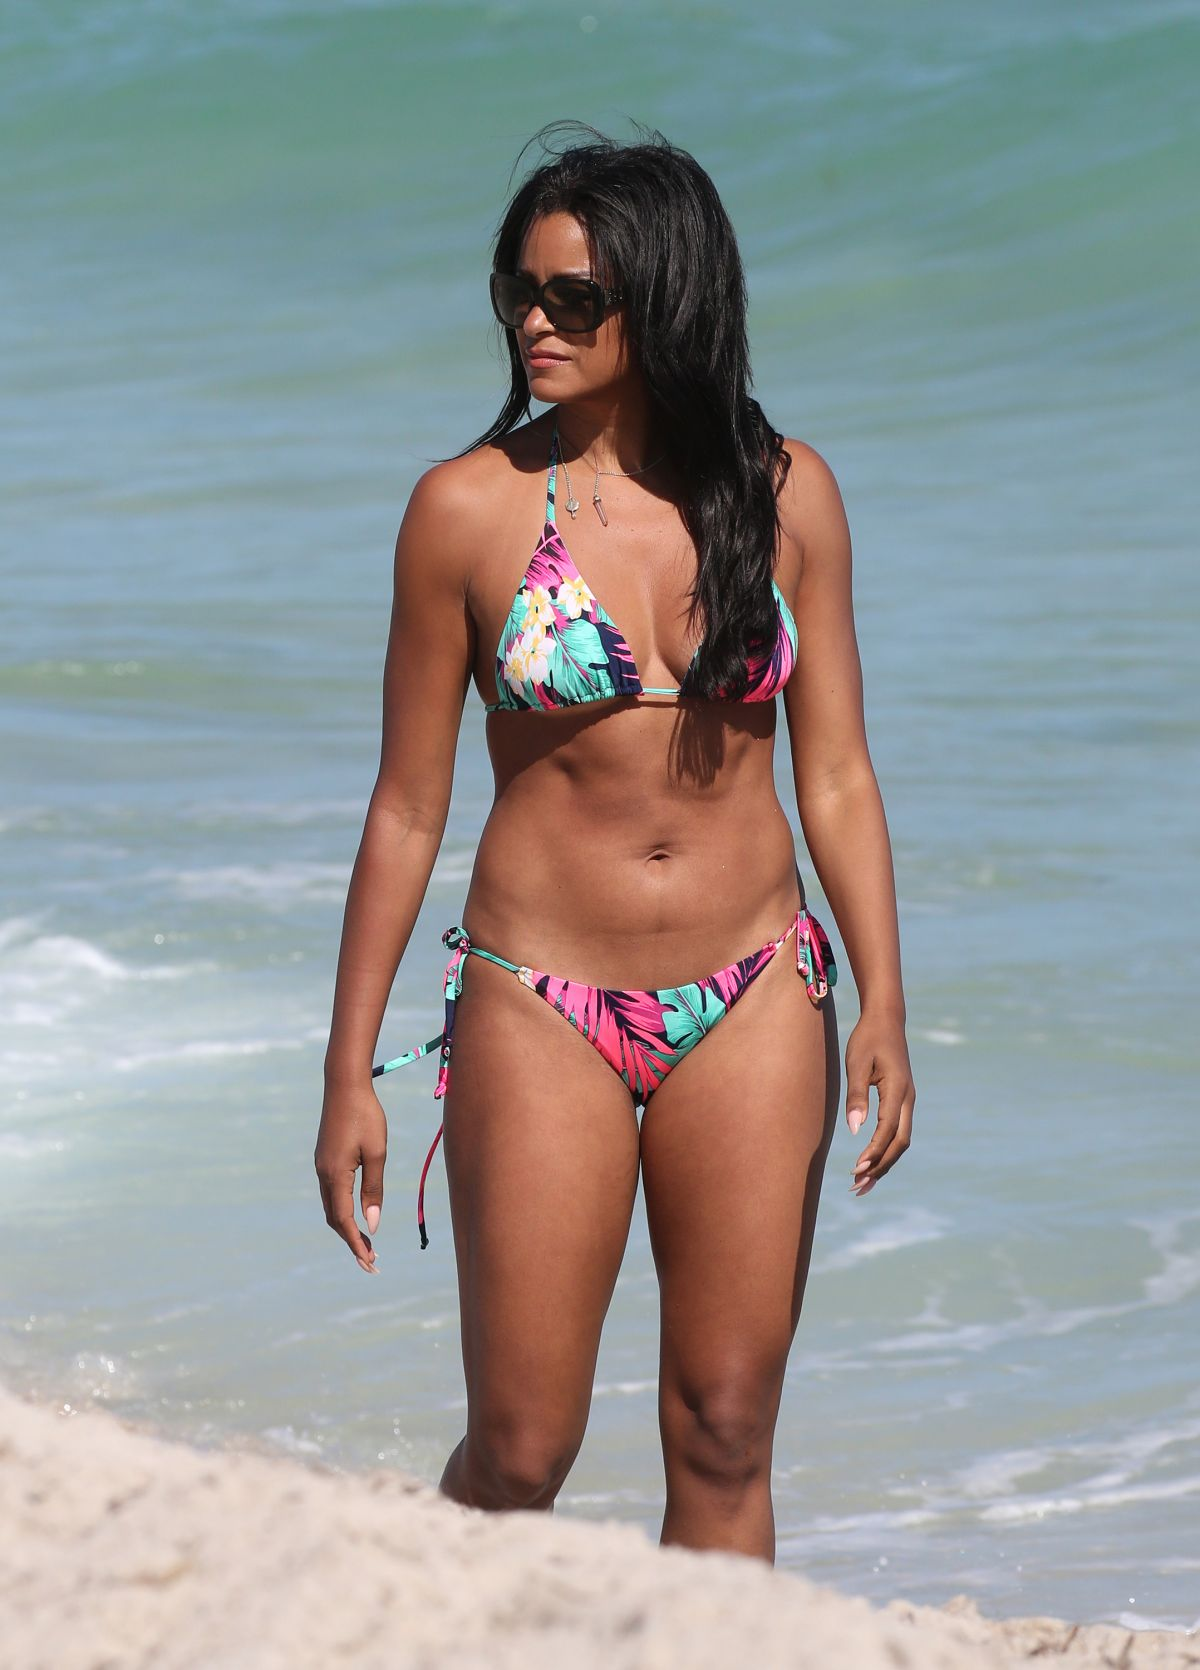 Commit error. claudia jordan bikini apologise